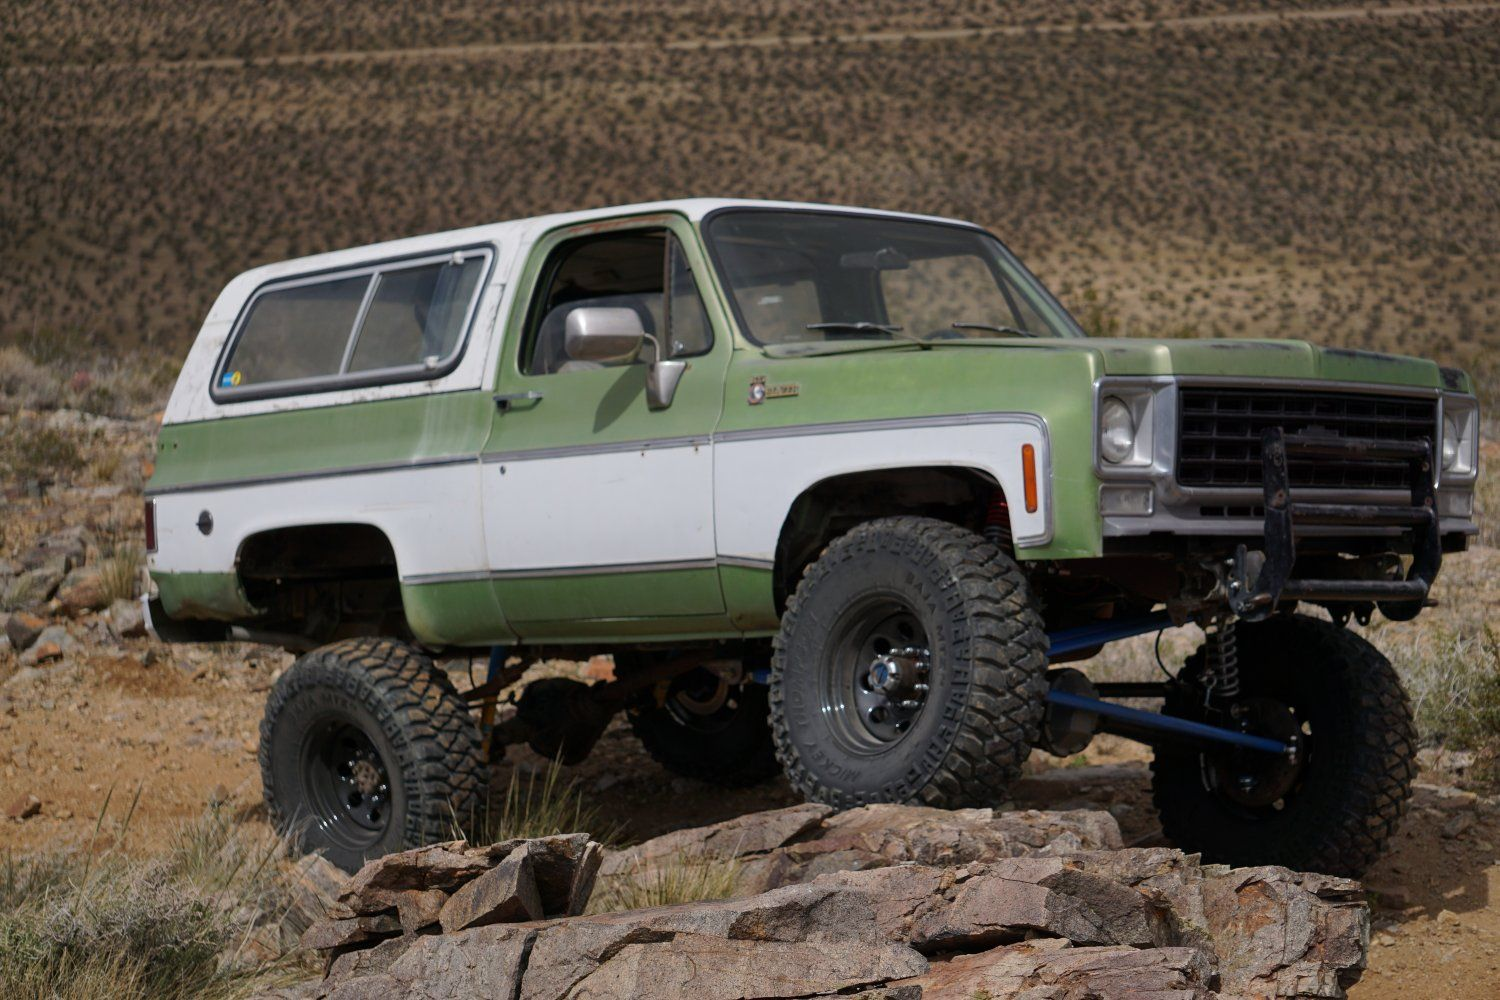 July 2016 Ck5 Chevy K5 Blazer With Coil Suspension Chevy Gmc